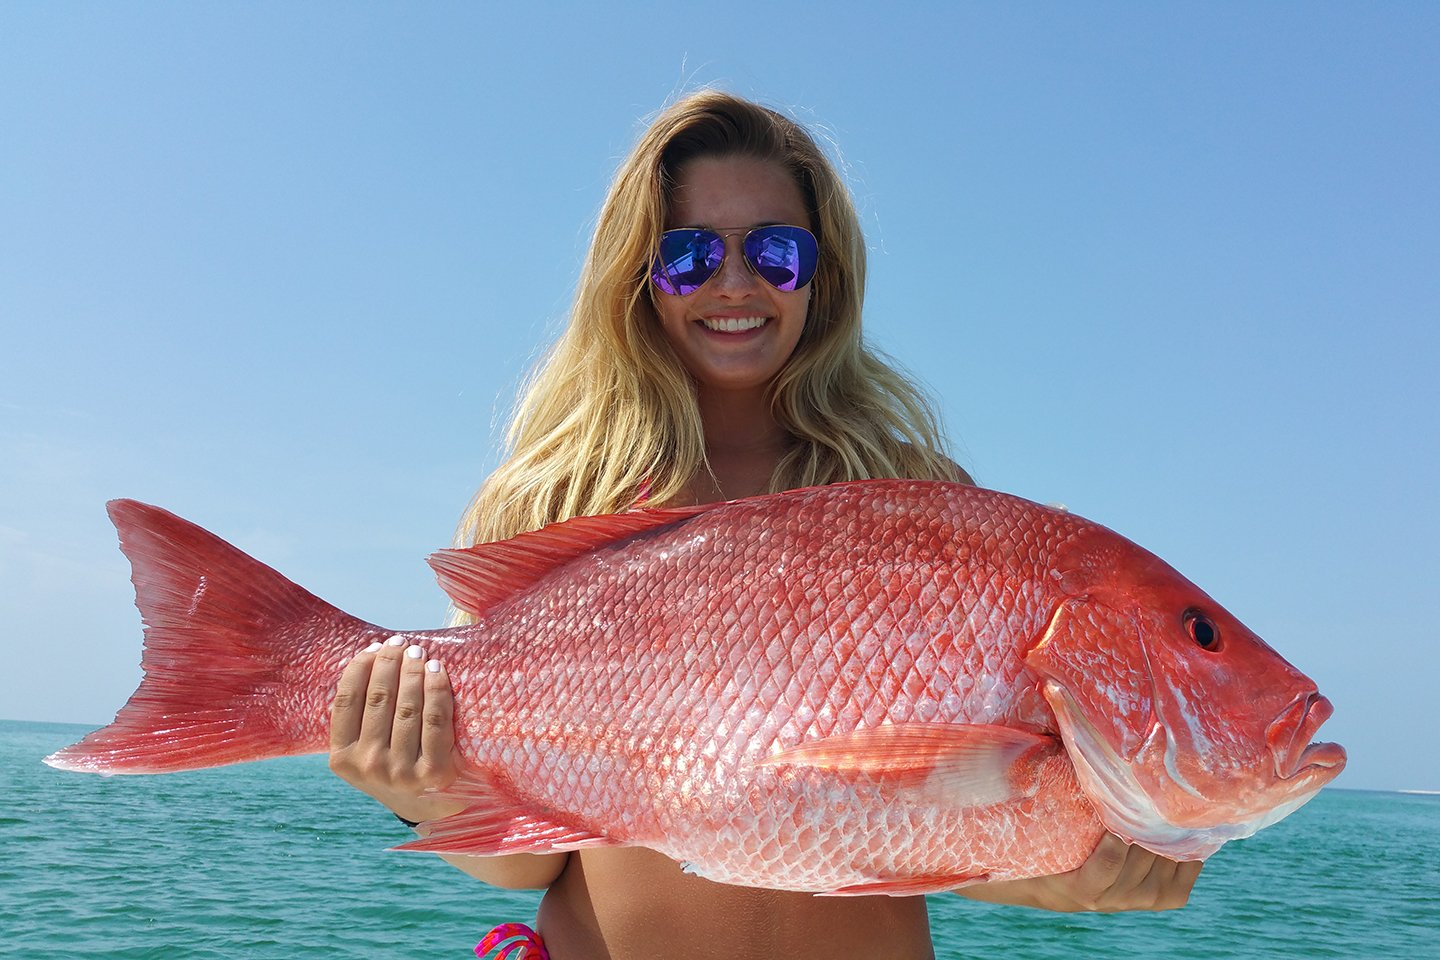 Smiling blonde female angler holding a large Red Snapper